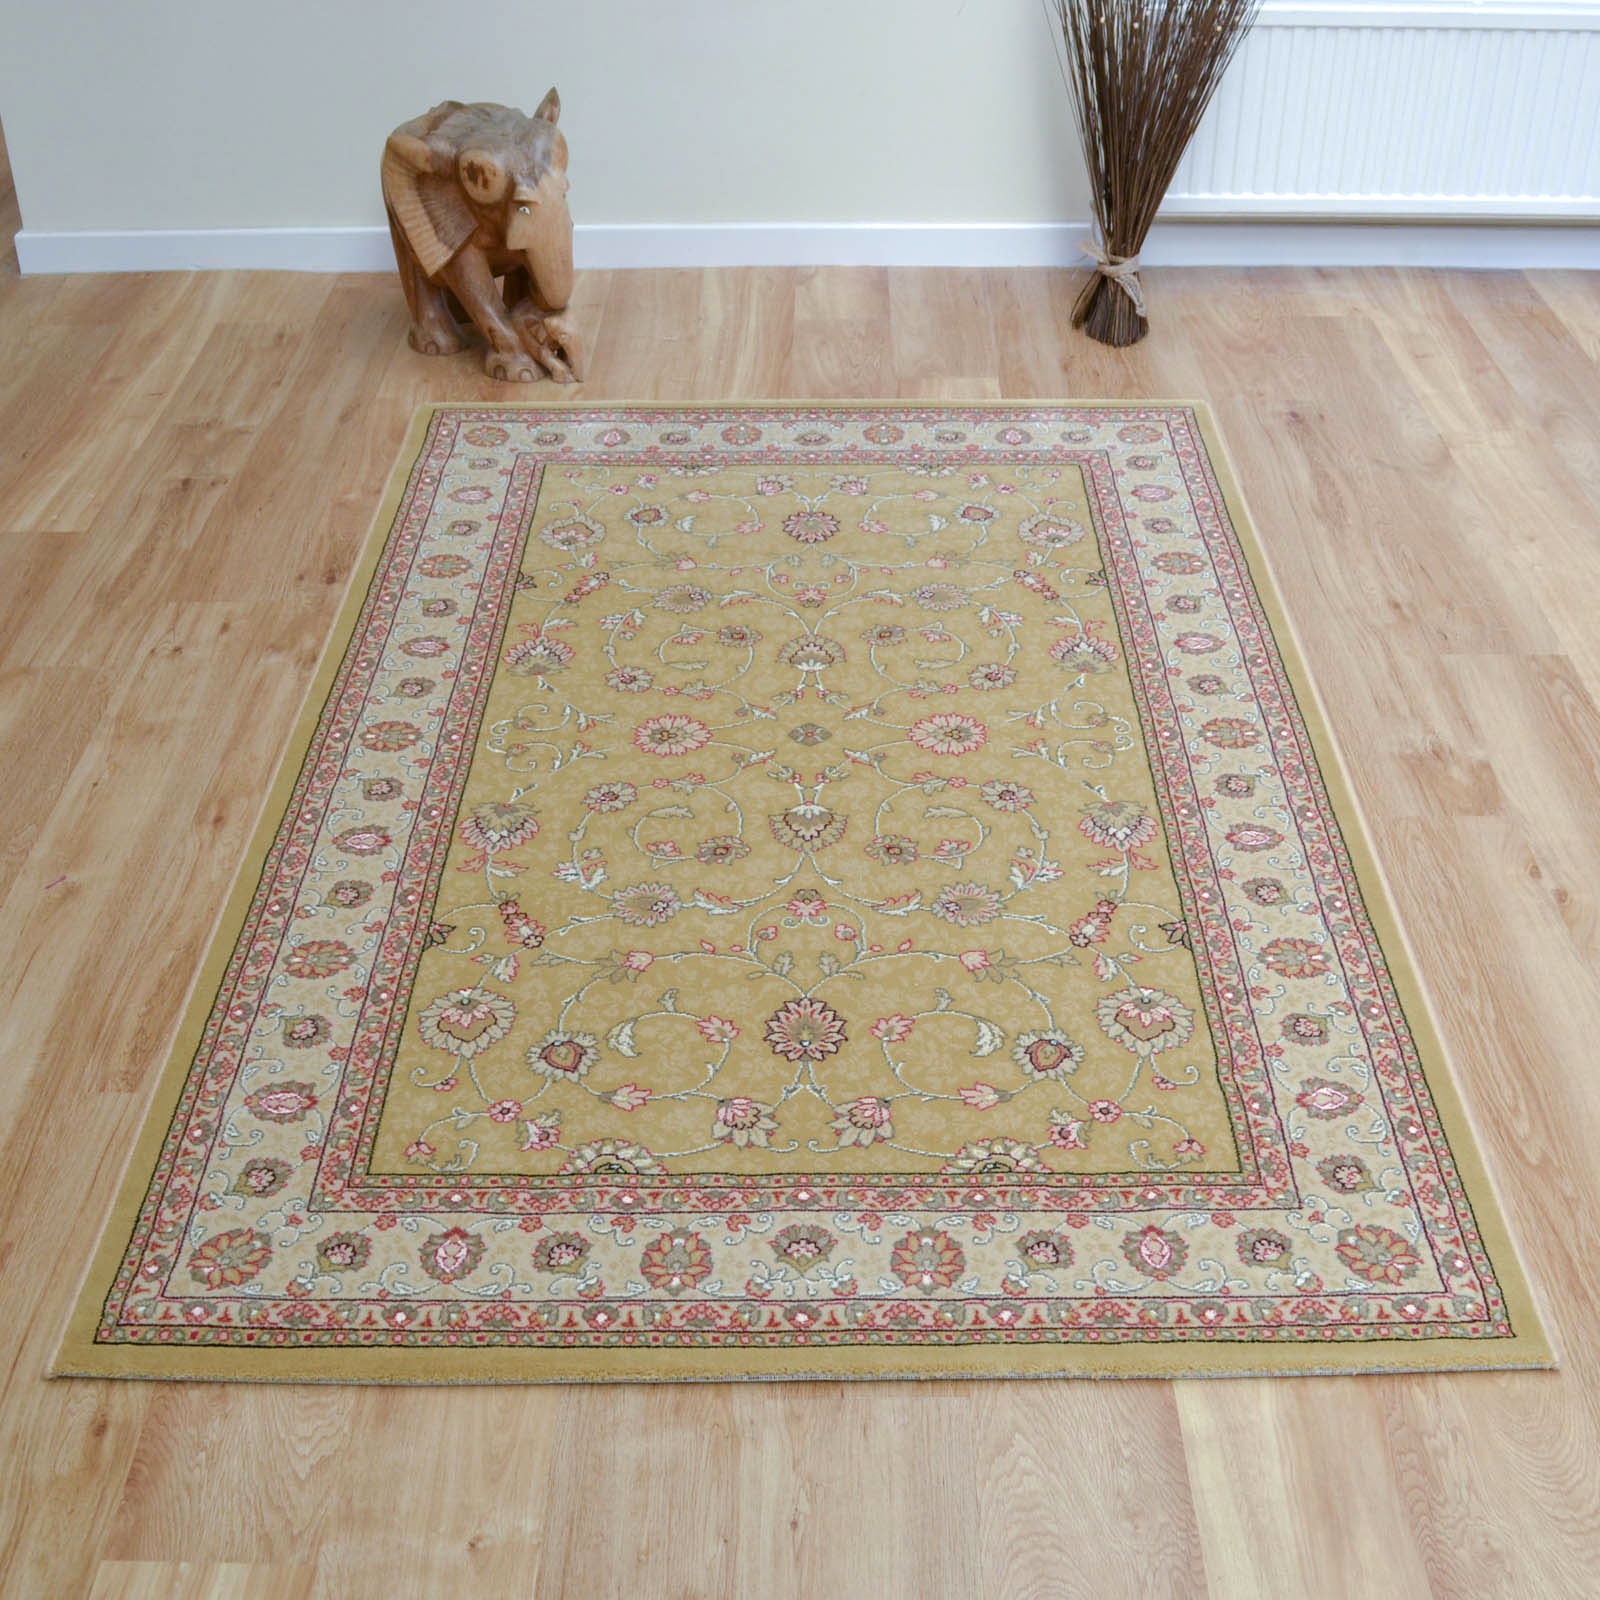 Noble Art Rugs 6529 790 Gold